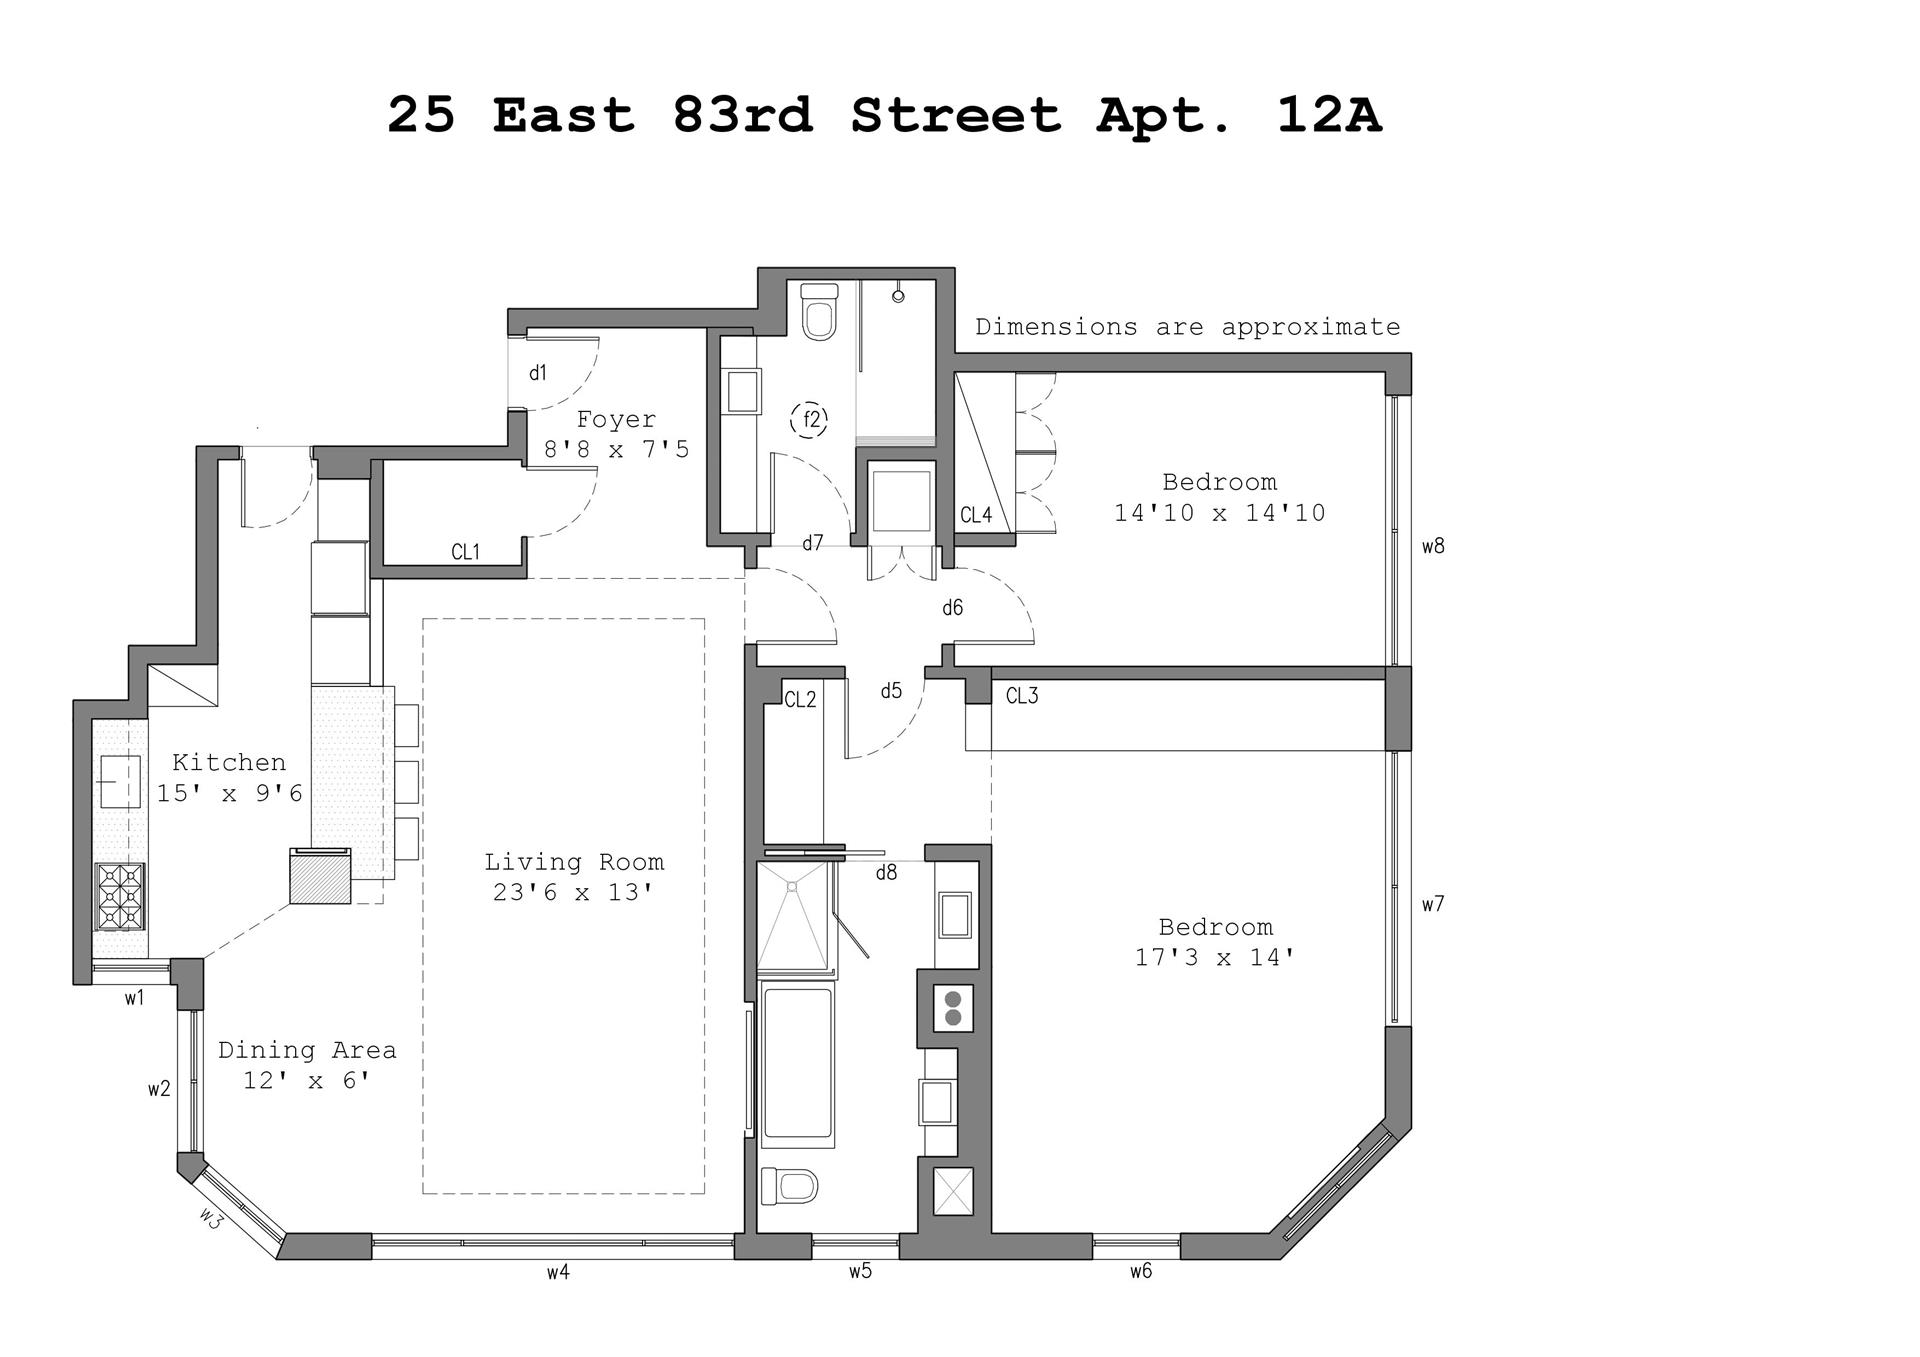 Floor plan of 25 East 83rd St, 12A - Upper East Side, New York